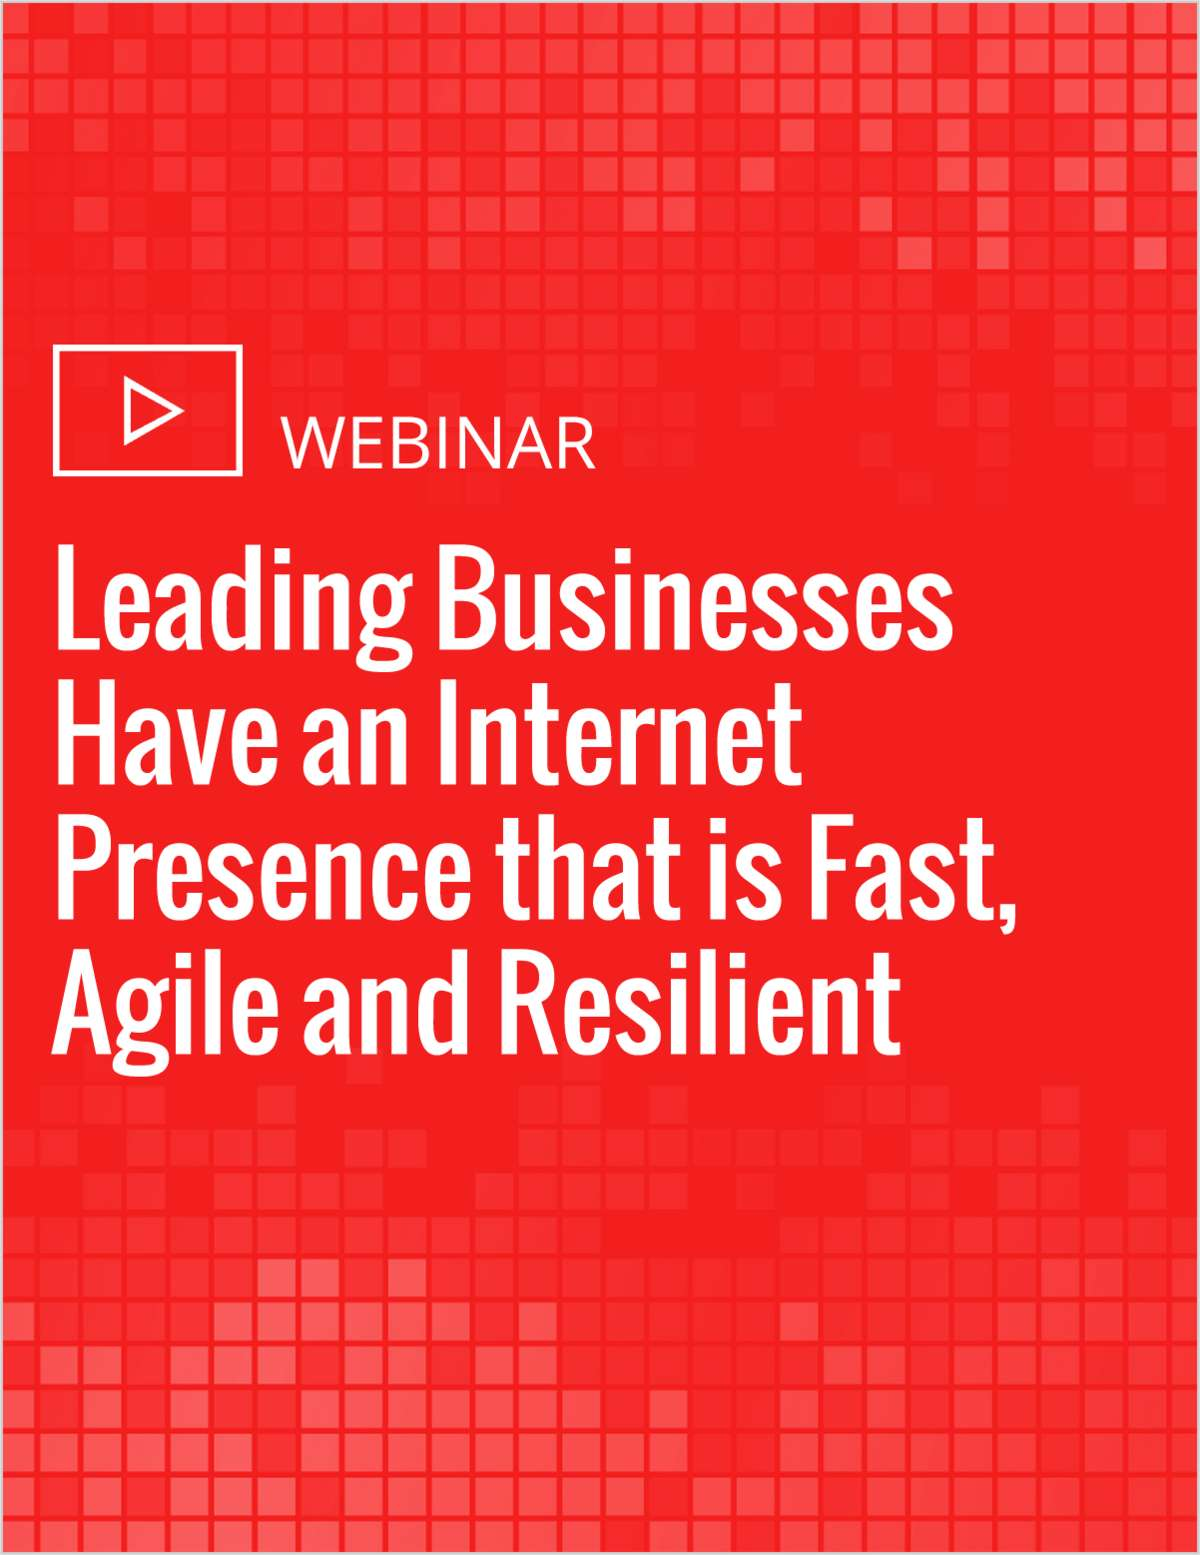 Leading Businesses Have an Internet Presence that is Fast, Agile and Resilient